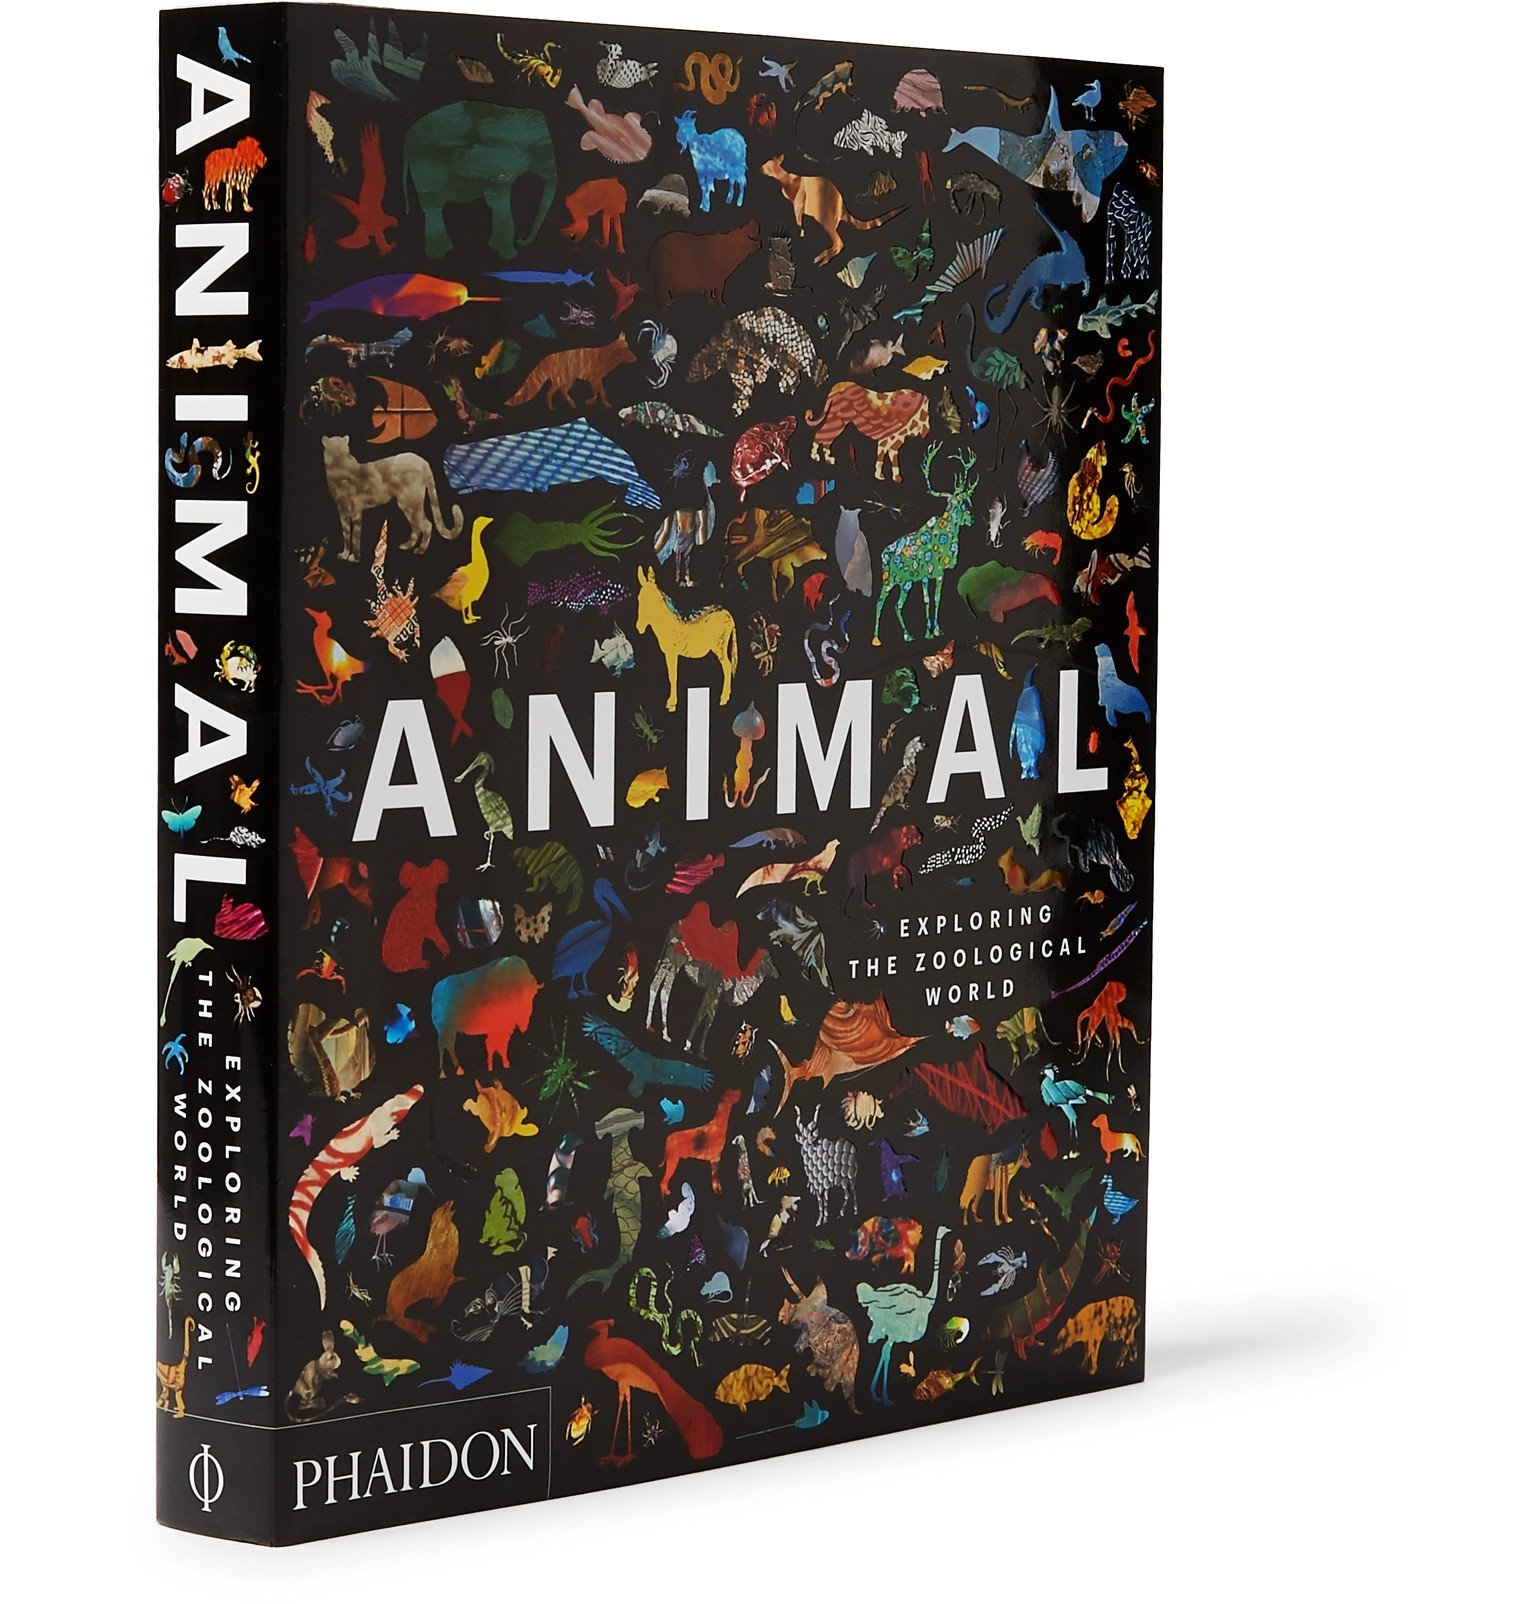 Photo: Phaidon - Animal: Exploring the Zoological World Hardcover Book - Black